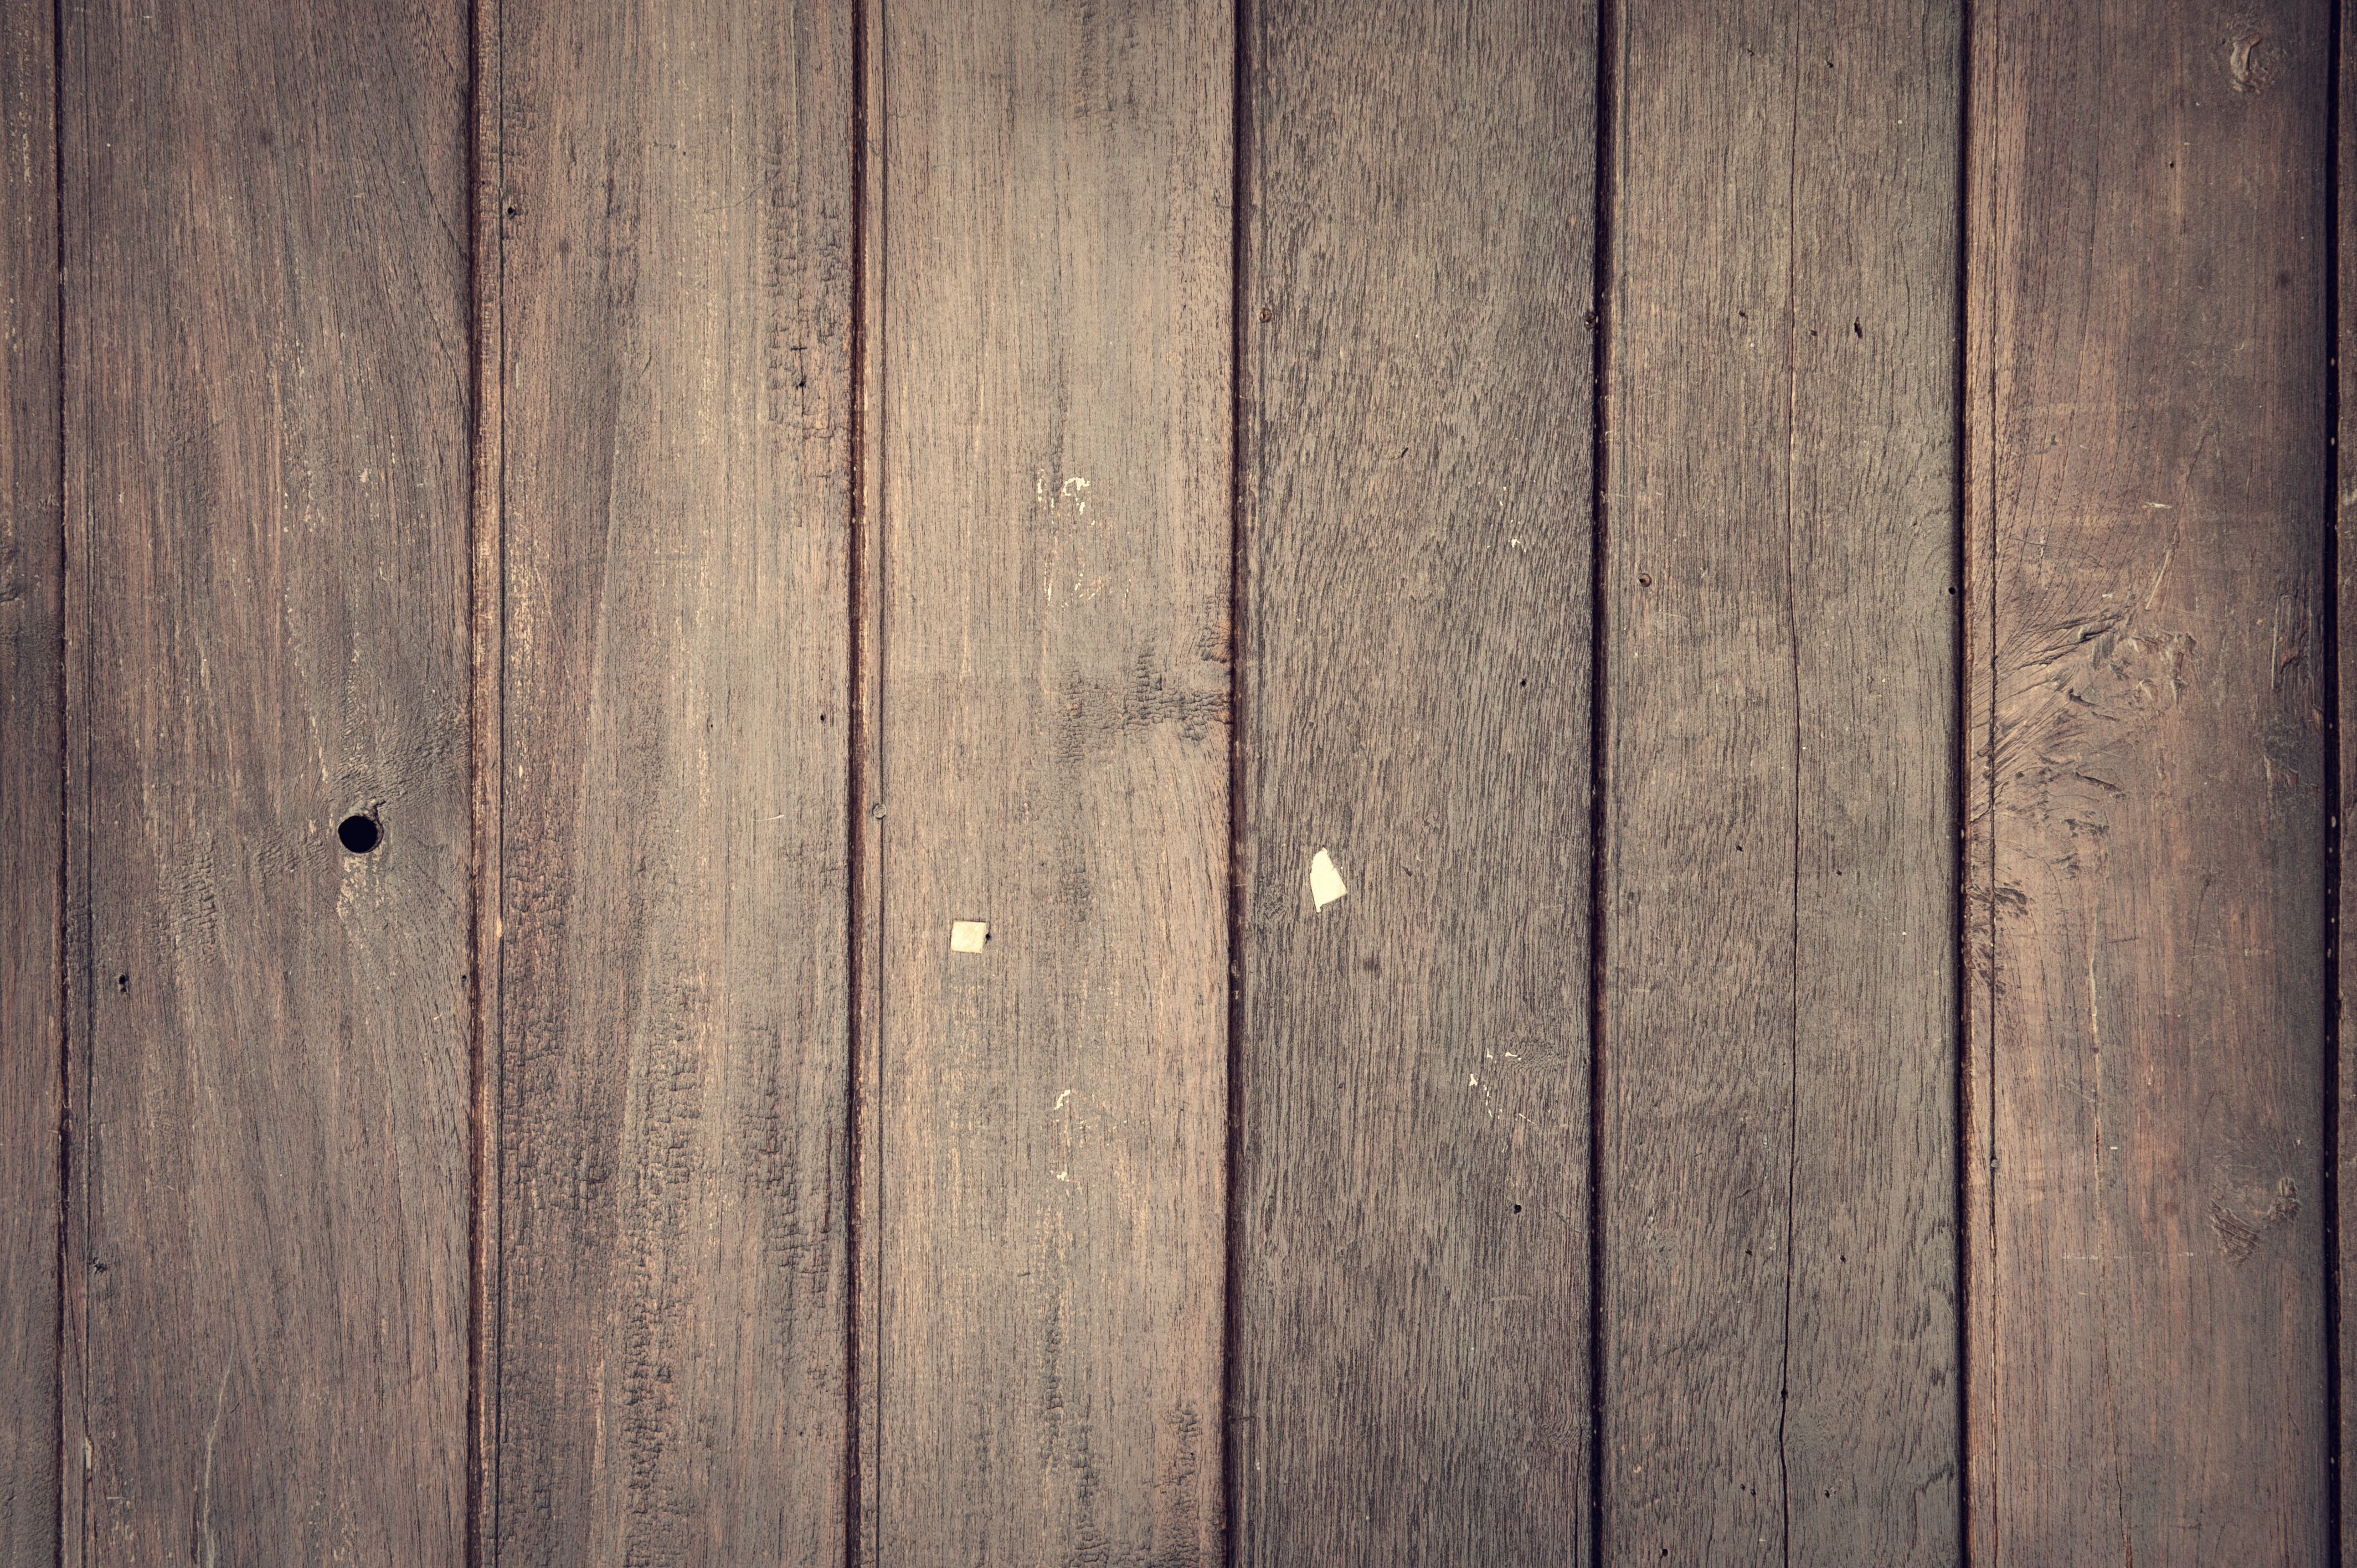 Free stock photos of wooden wallPexels